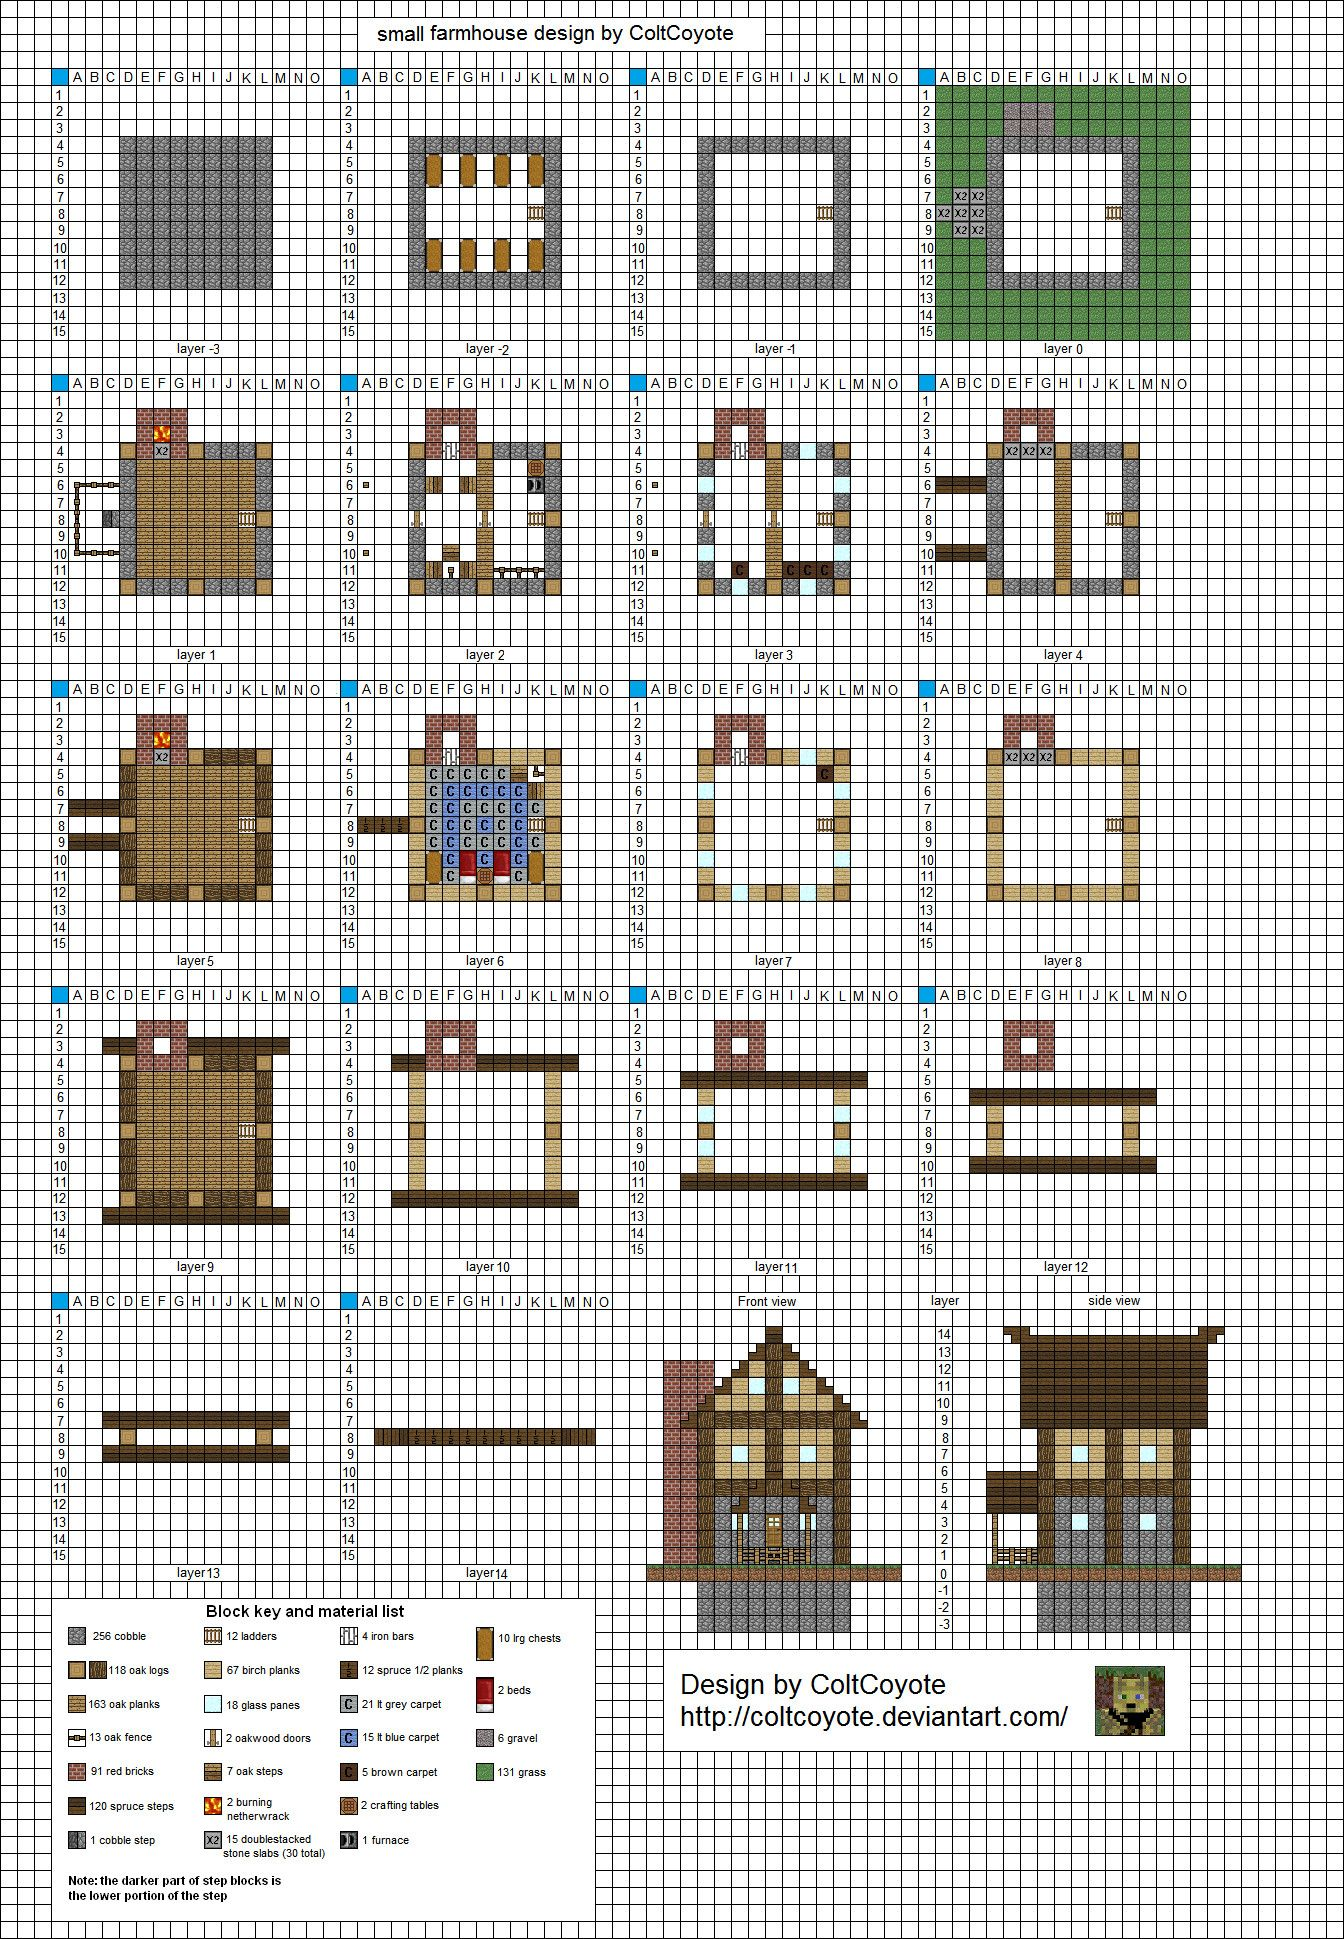 Beliebt Poppy Cottage - Medium Minecraft House Blueprints by planetarymap  GO76